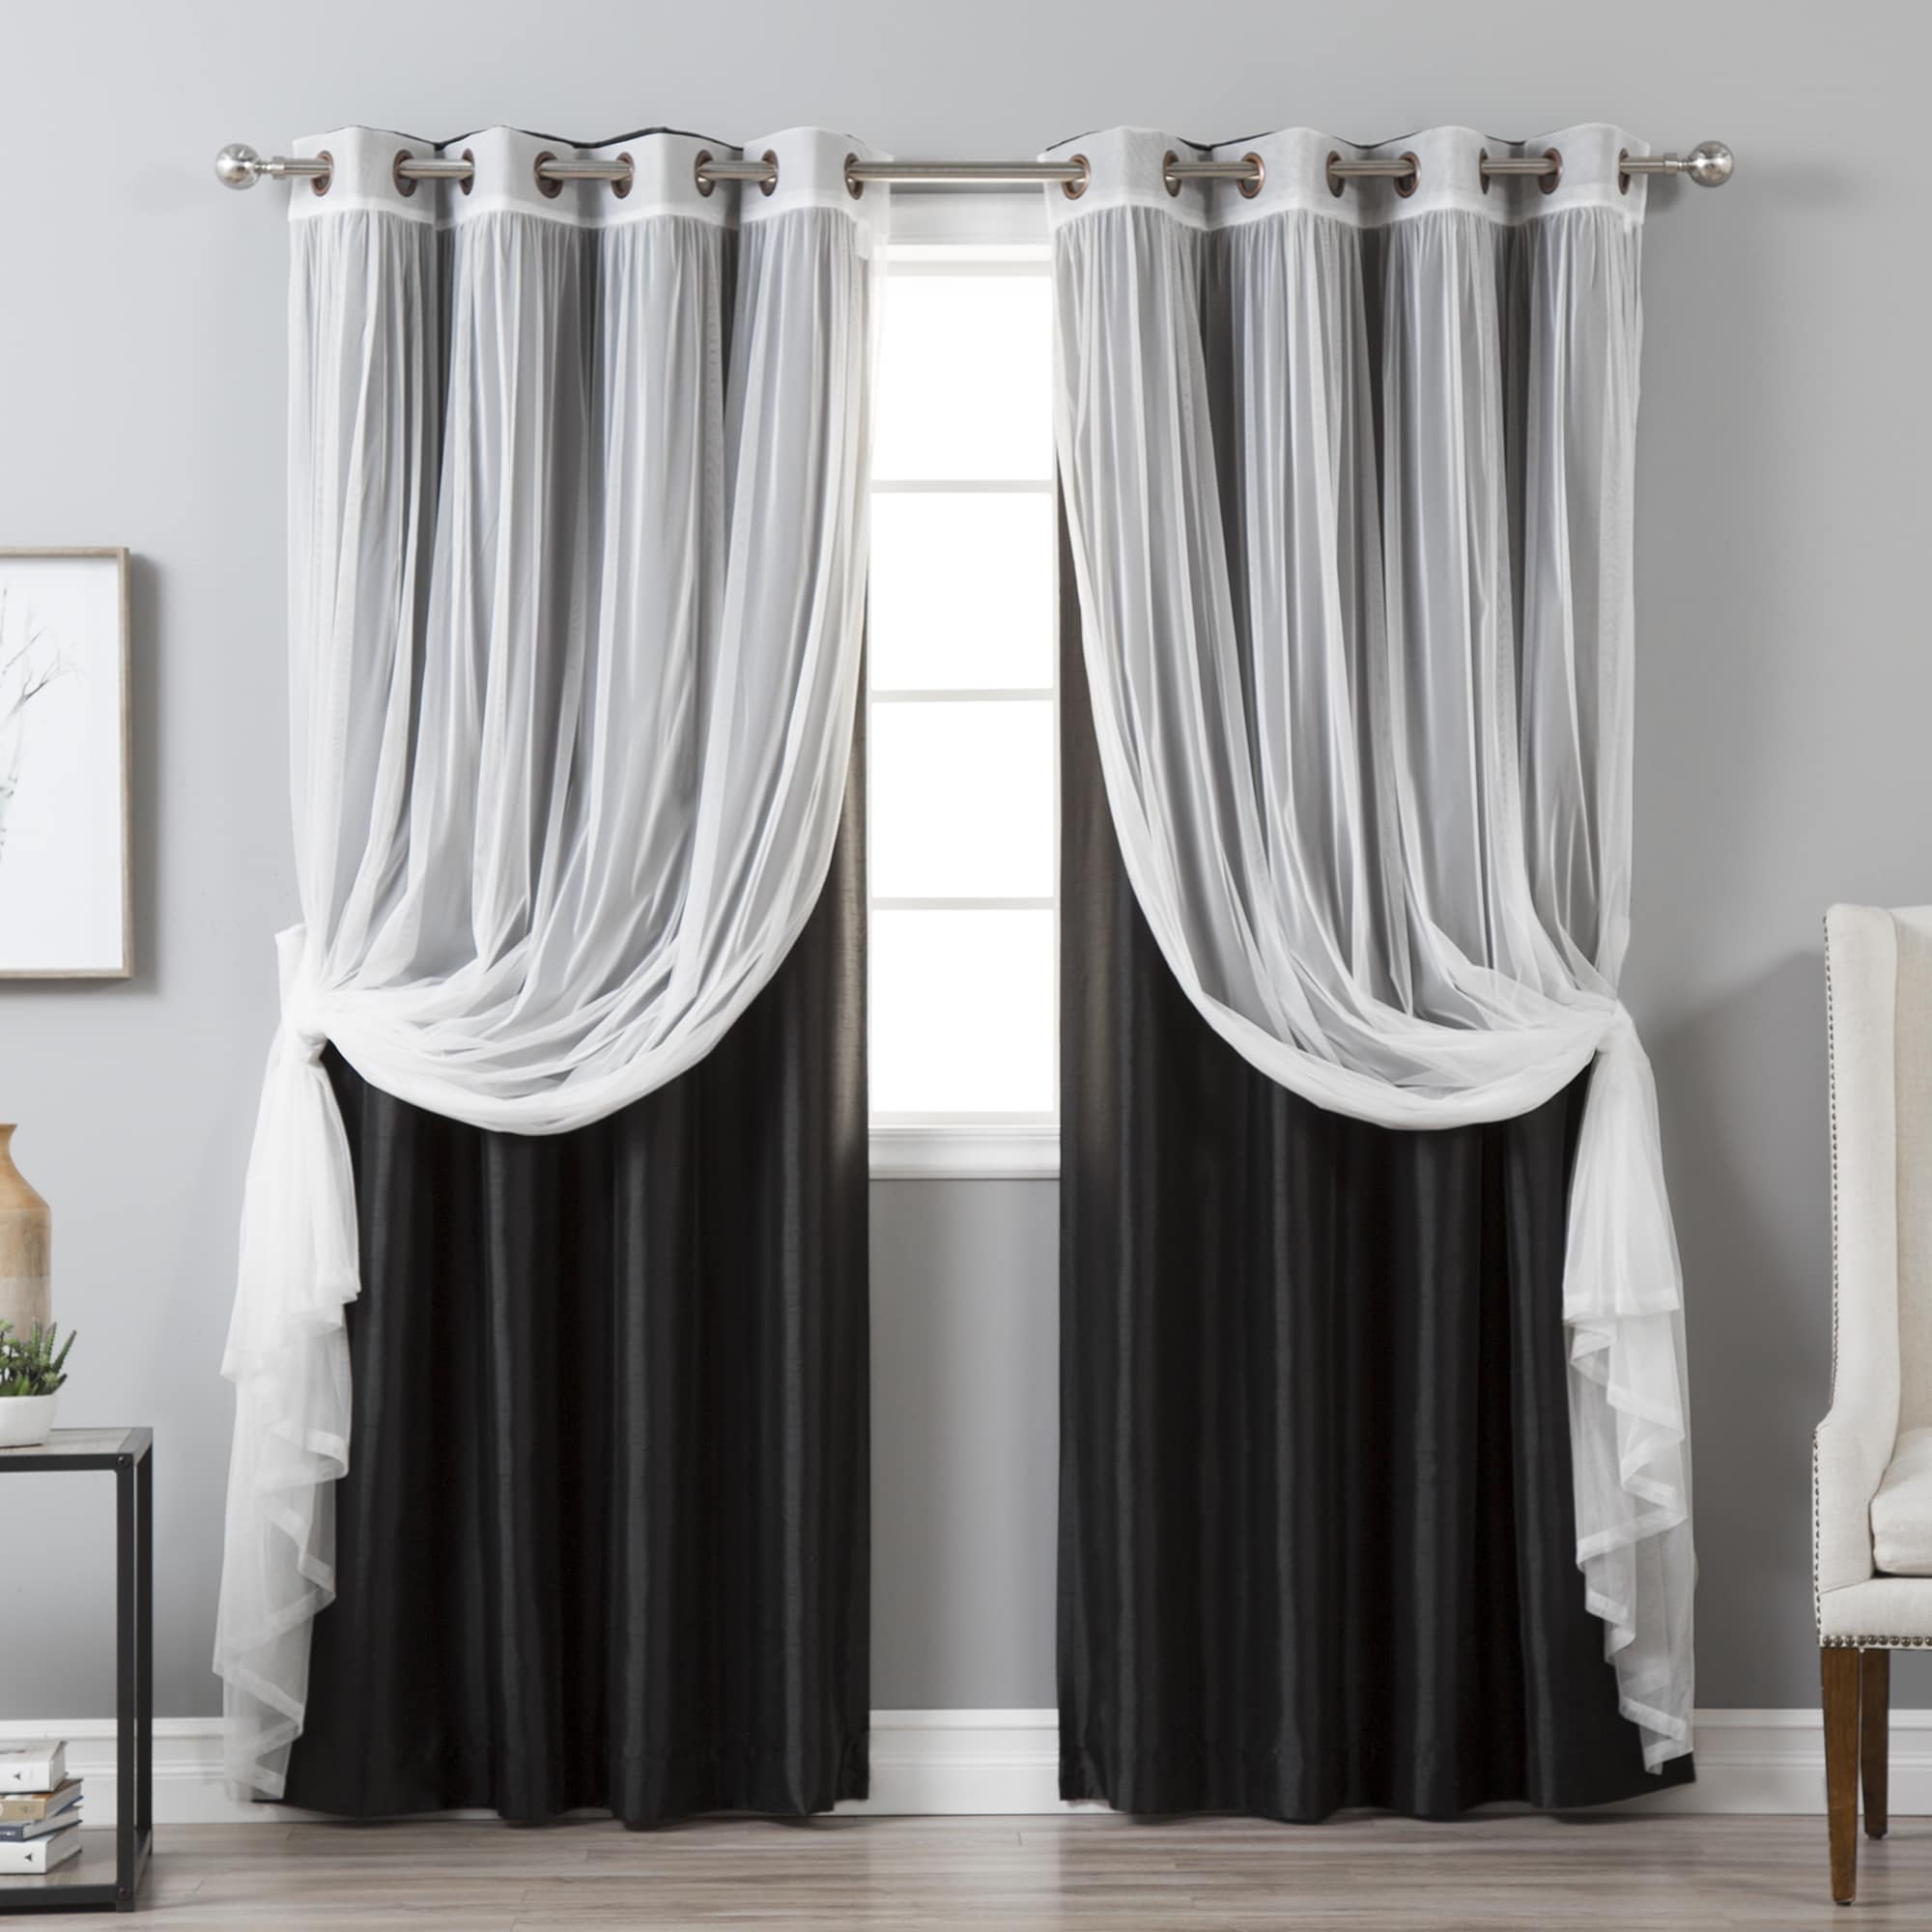 Aurora Home  Mix & Match Faux Silk Blackout Tulle Sheer 4 Piece Panel Curtain Set - 52x84